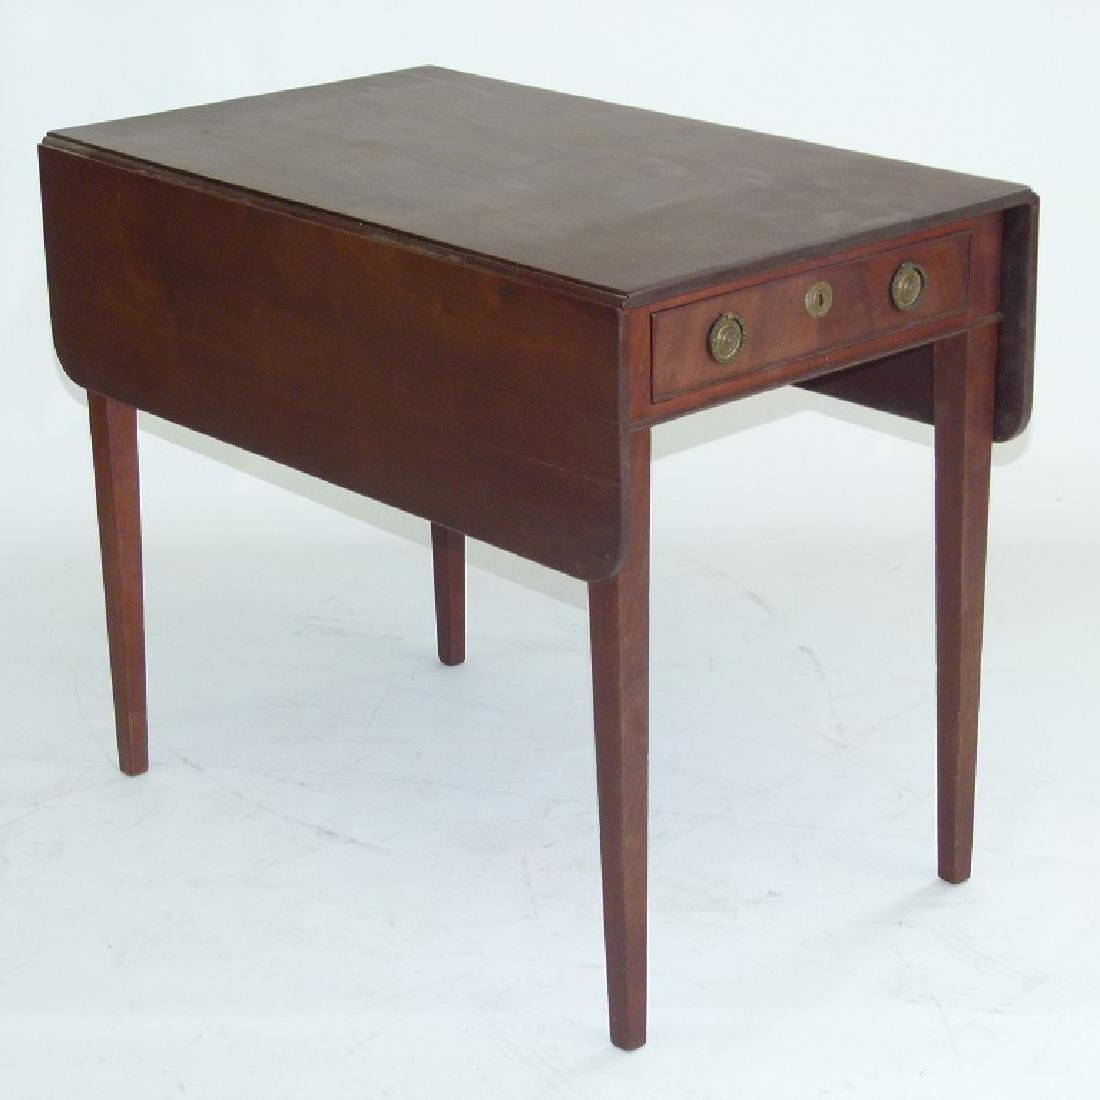 HEPPLEWHITE MAHOGANY PEMBROKE TABLE